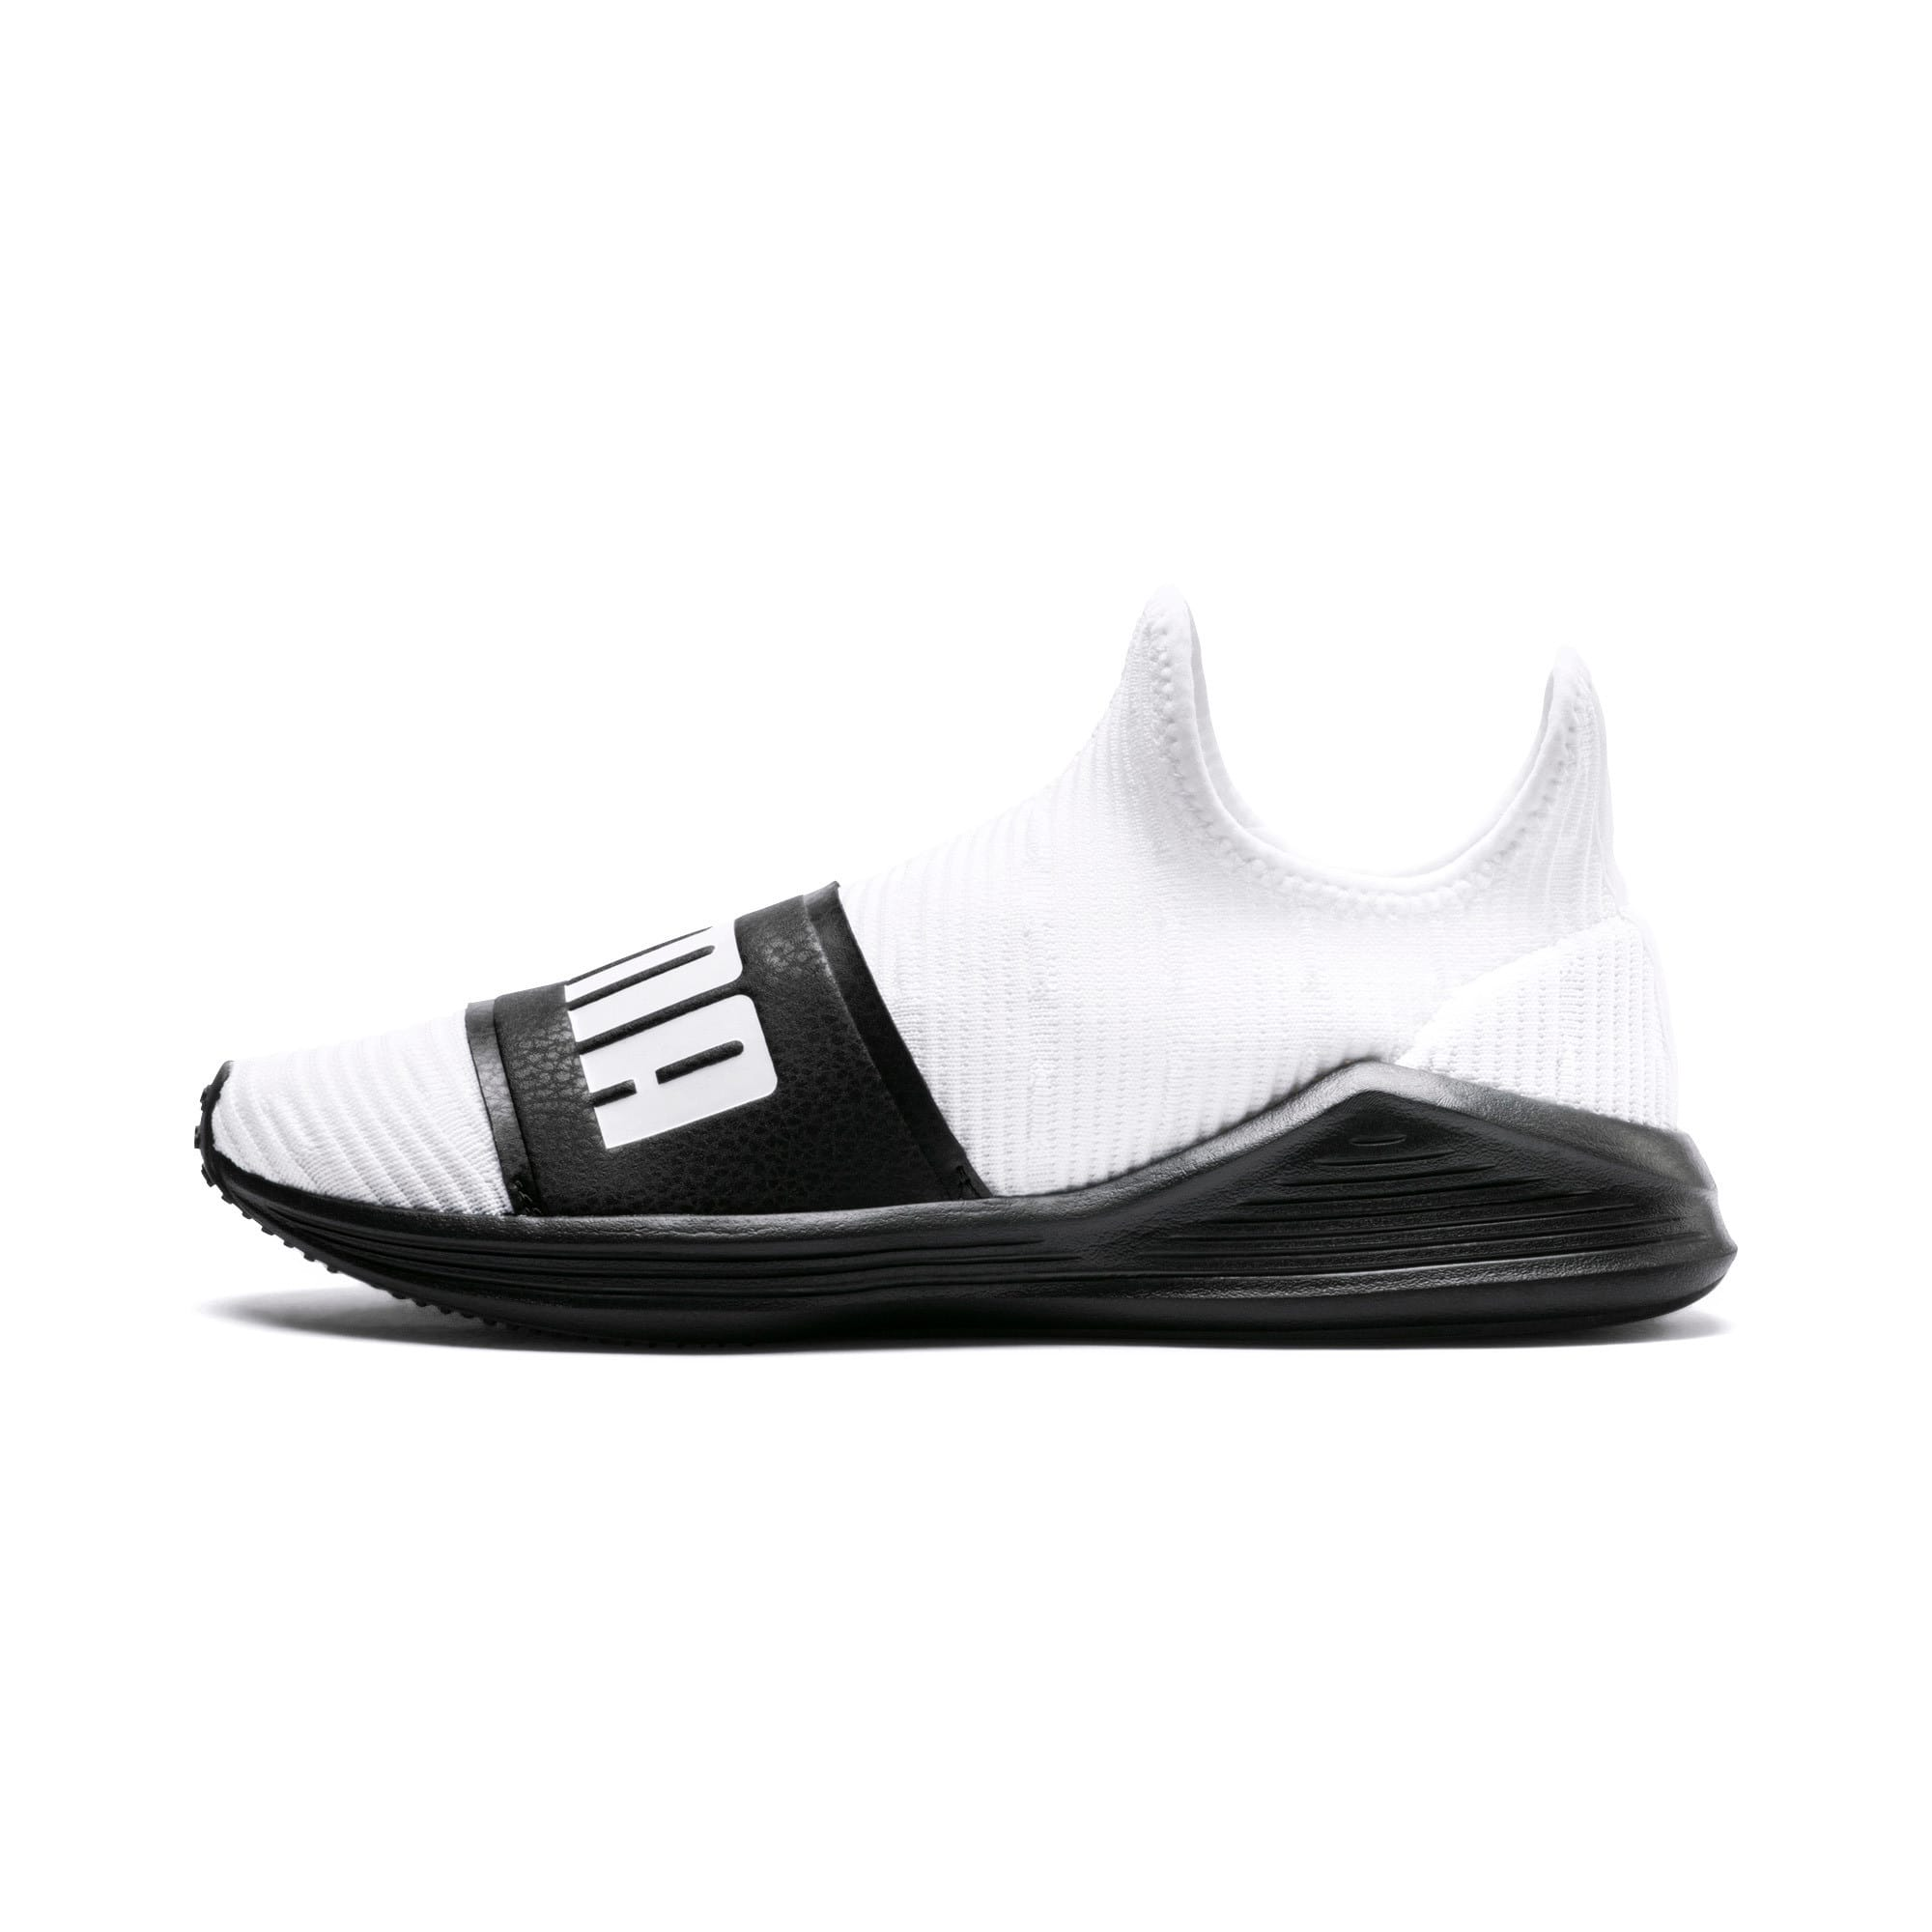 Thumbnail 1 of Fierce Slide Women's Trainers, Puma White-Puma Black, medium-IND